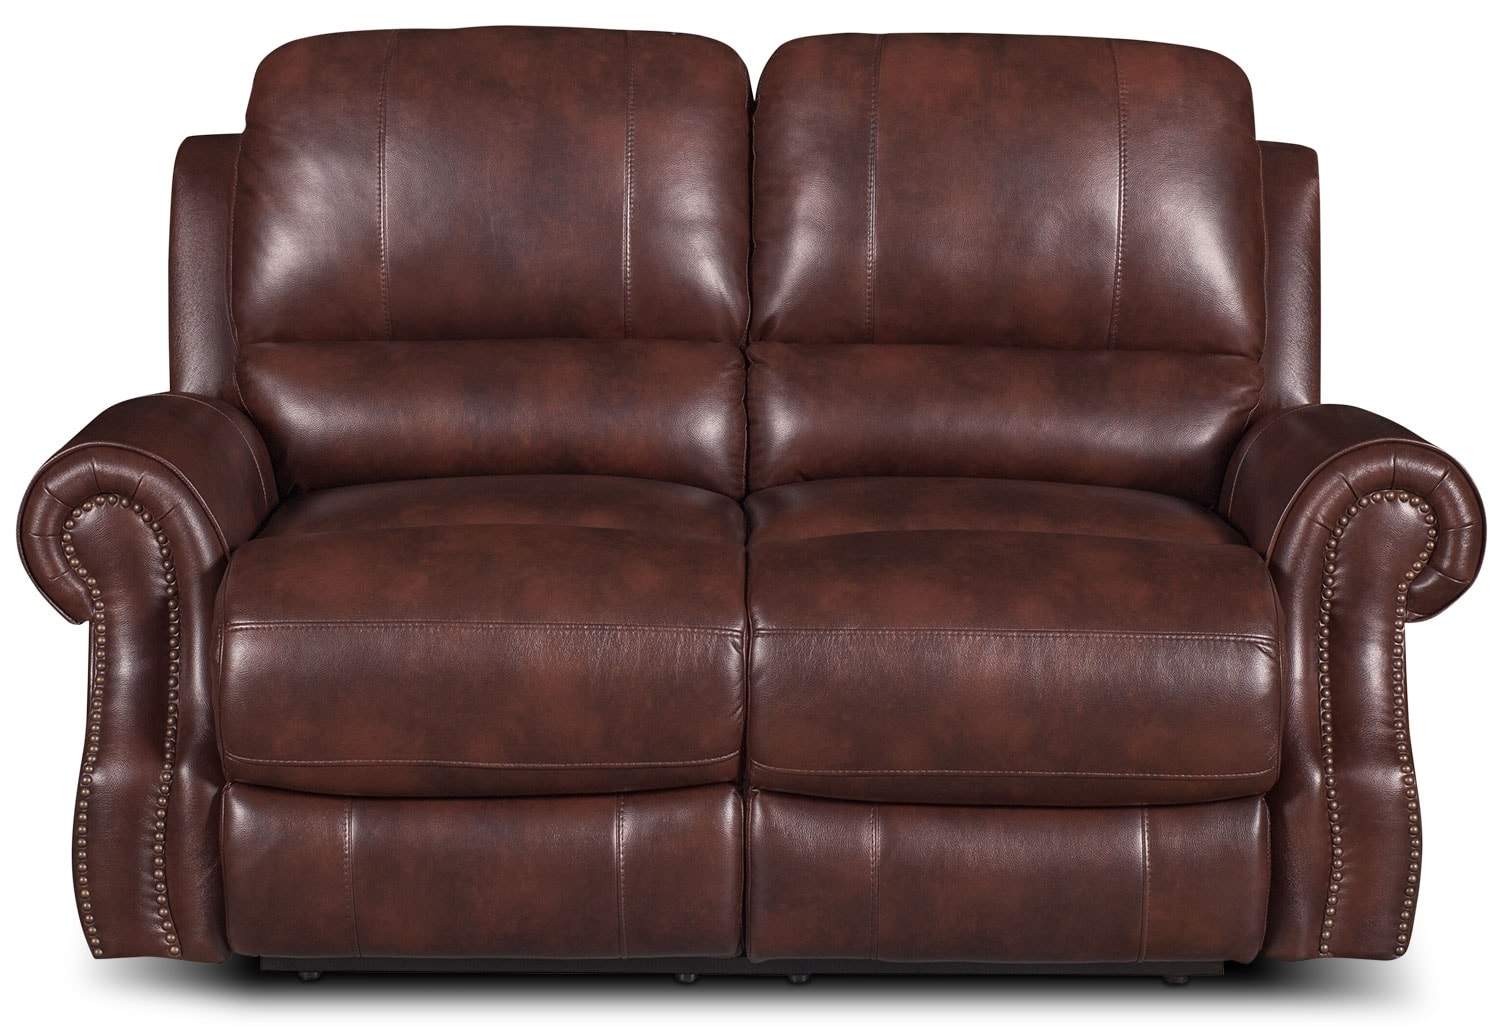 Living Room Furniture - Magnum Leather-Look Fabric Power Reclining Loveseat – Brown